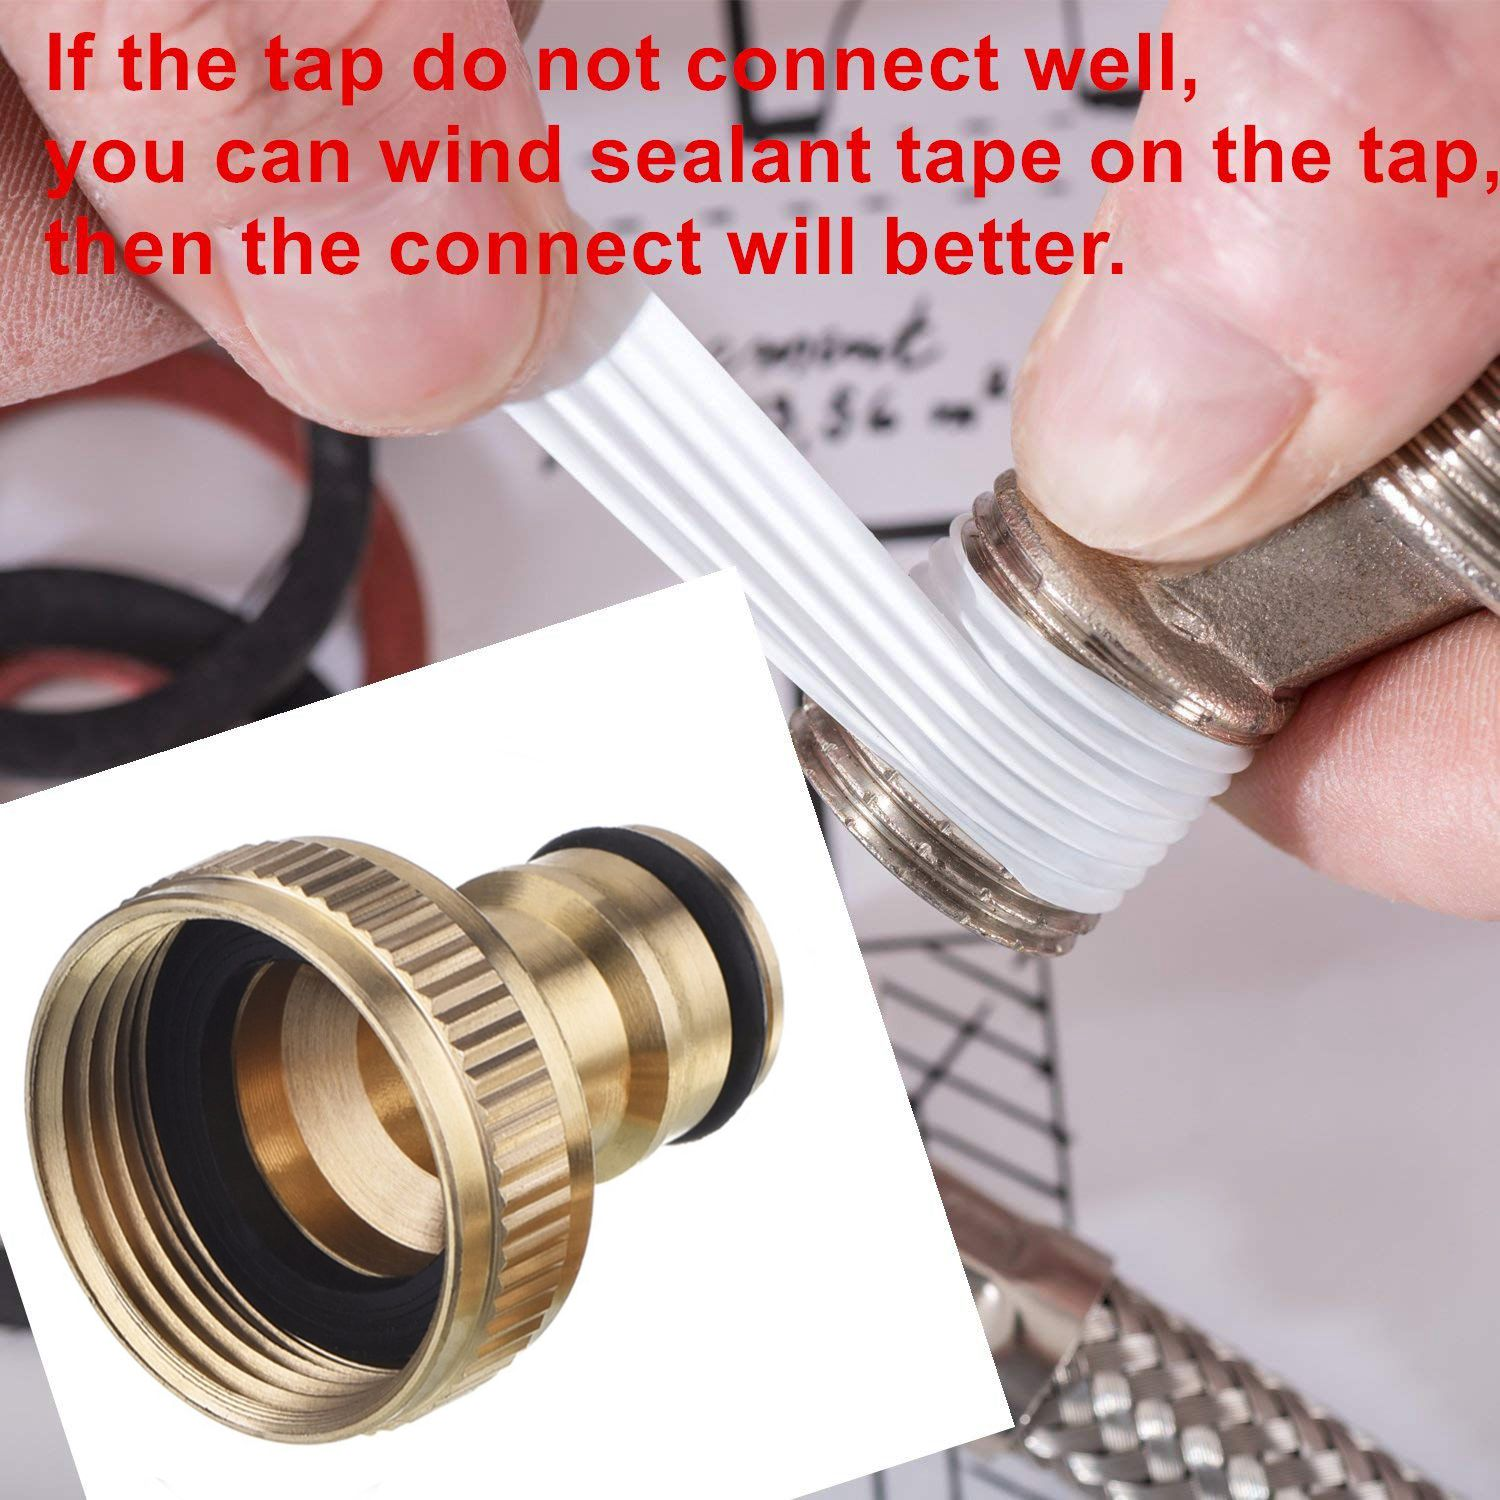 2PCs 3/4-Inch Garden Hose Tap Connector Brass Garden Hosepipe Tap Connector Threaded Faucet Adapter for outer diameter 25mm 4 way water tap converter 3 4 connector splitter hose pipe adapter pipe fitting garden irrigation watering page 5